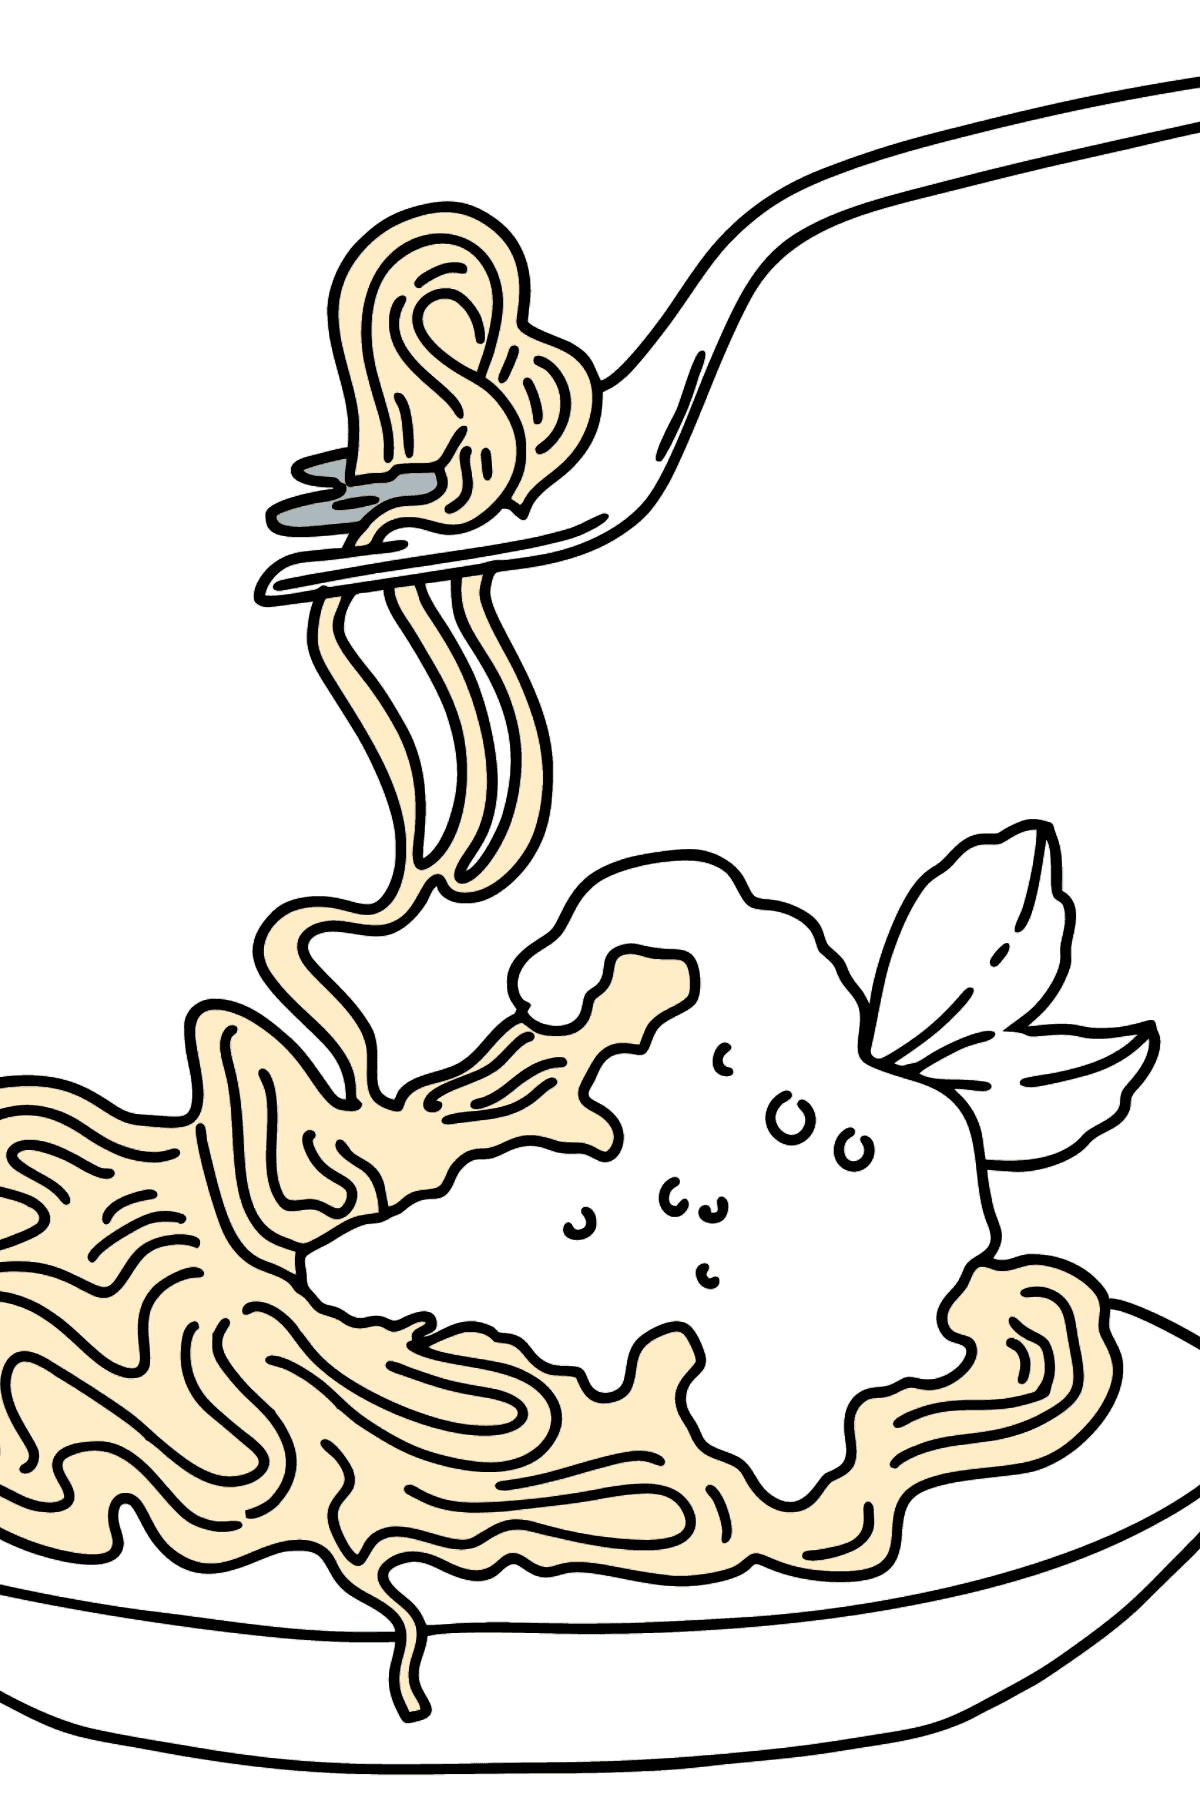 Spaghetti with Tomato Sauce coloring page - Coloring Pages for Kids